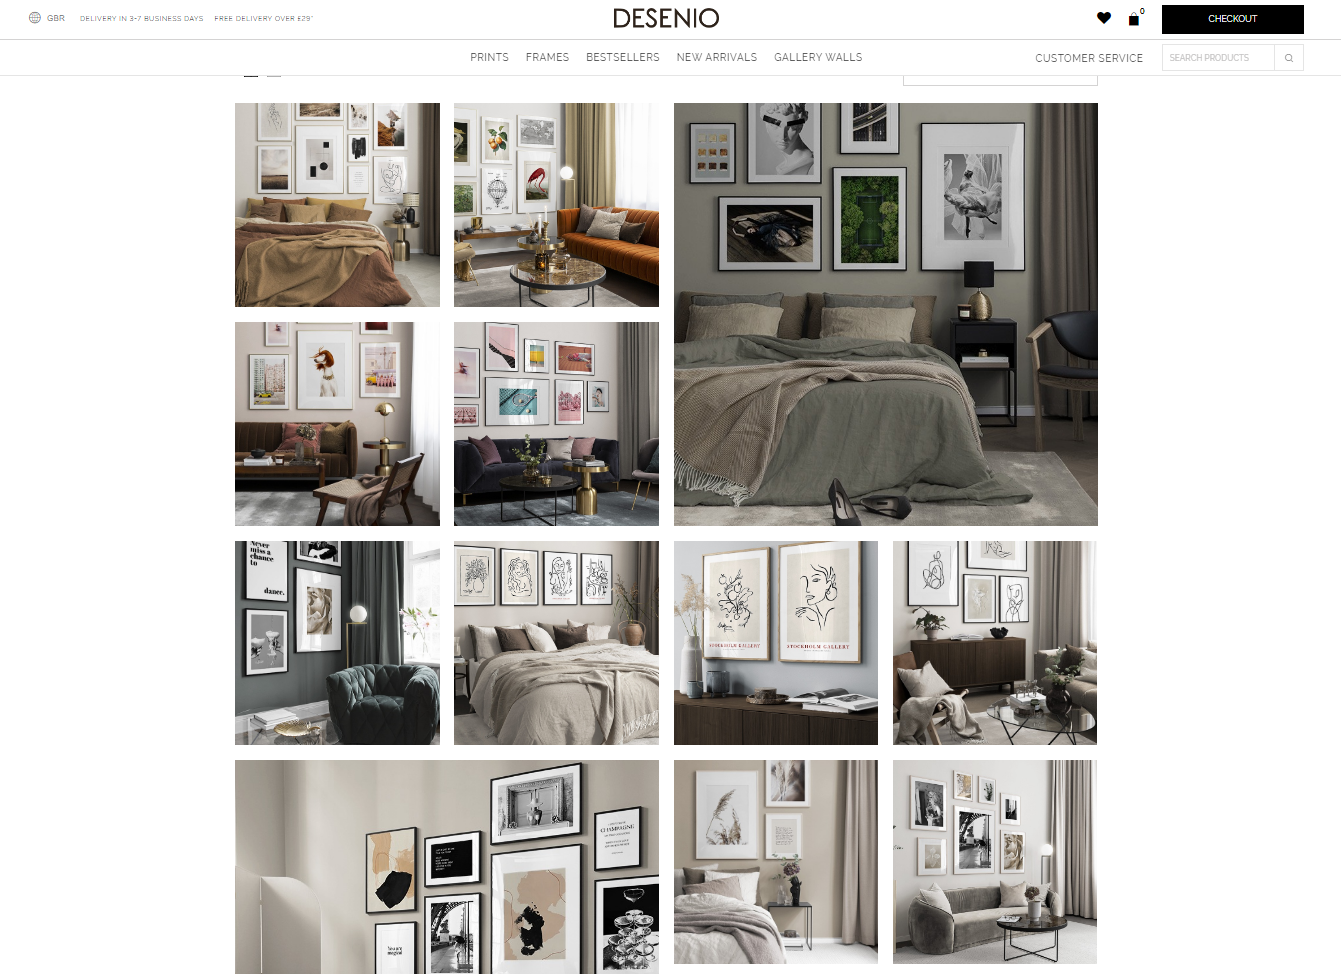 Gallery Wall Inspiration Desenio